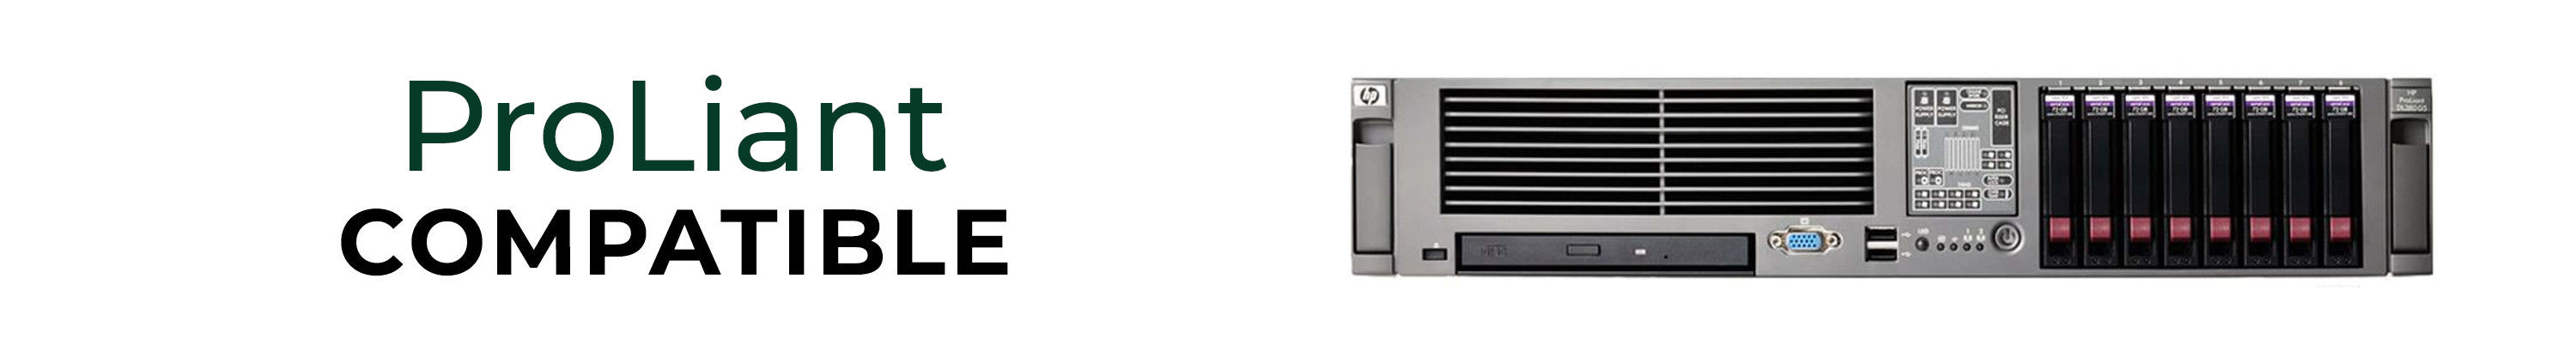 proliant compatible sff options